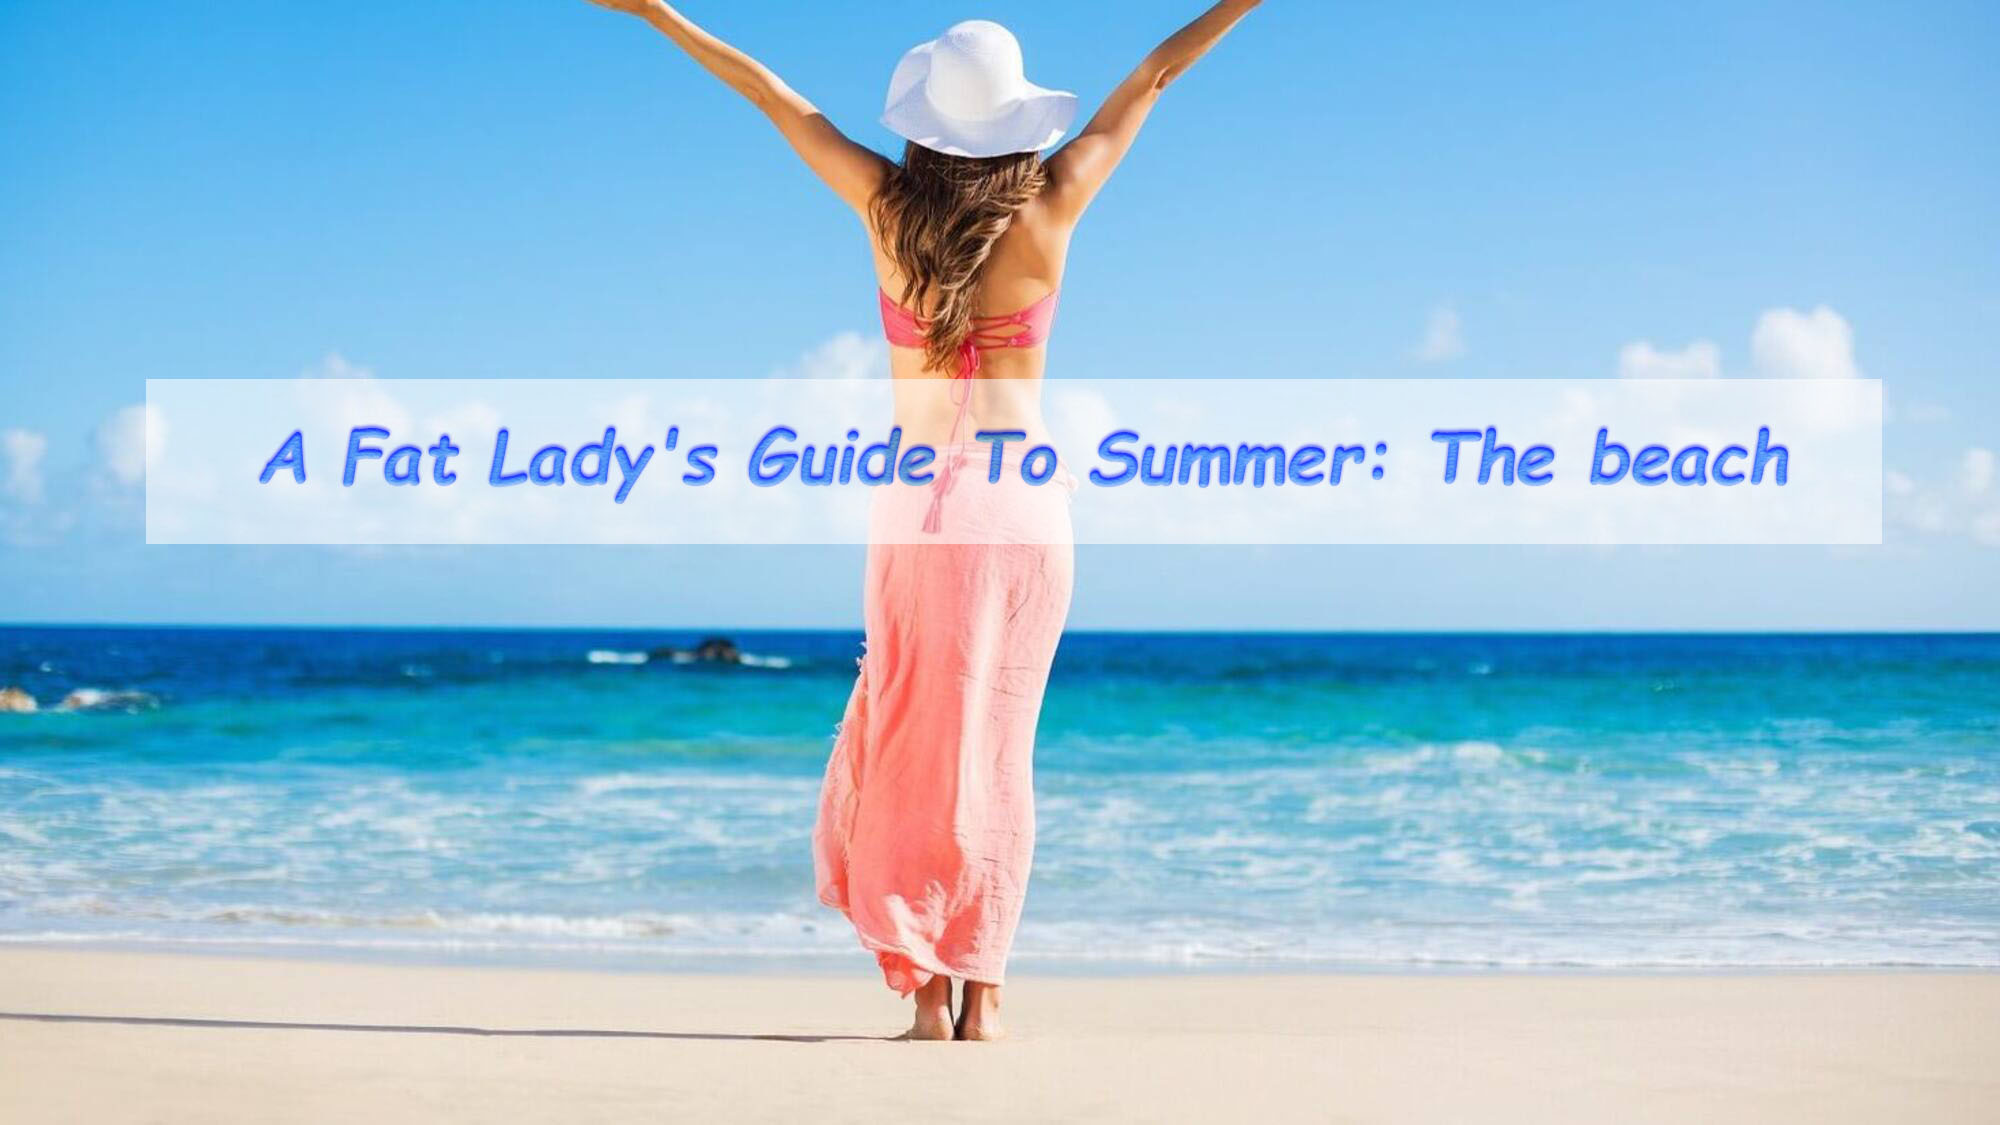 What Should A Chubby Lady Wear To The Beach?